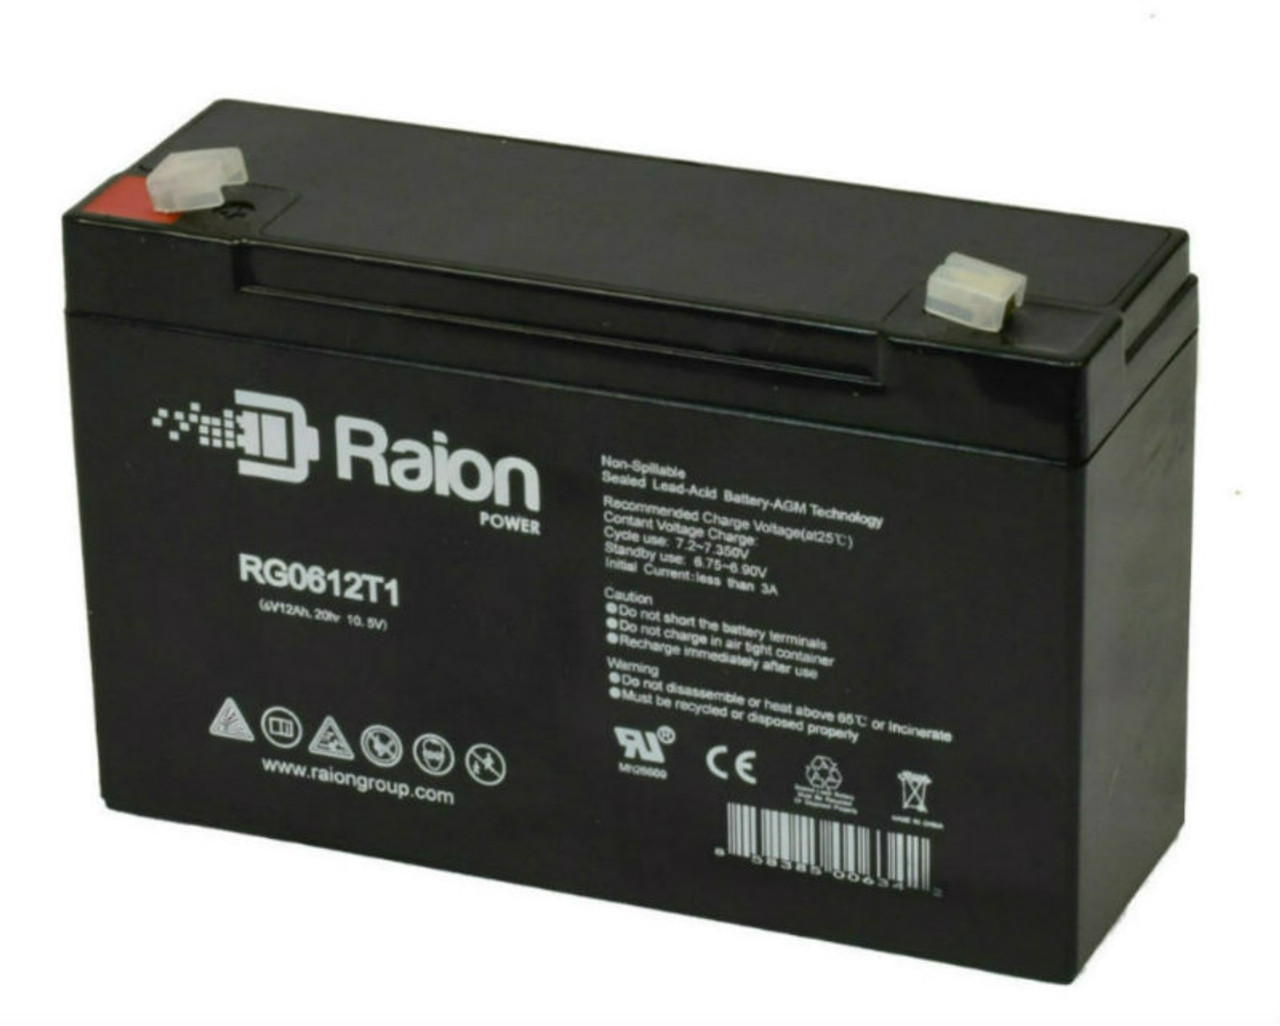 Raion Power RG06120T1 Replacement Battery Pack for Sure-Lites RD3 emergency light